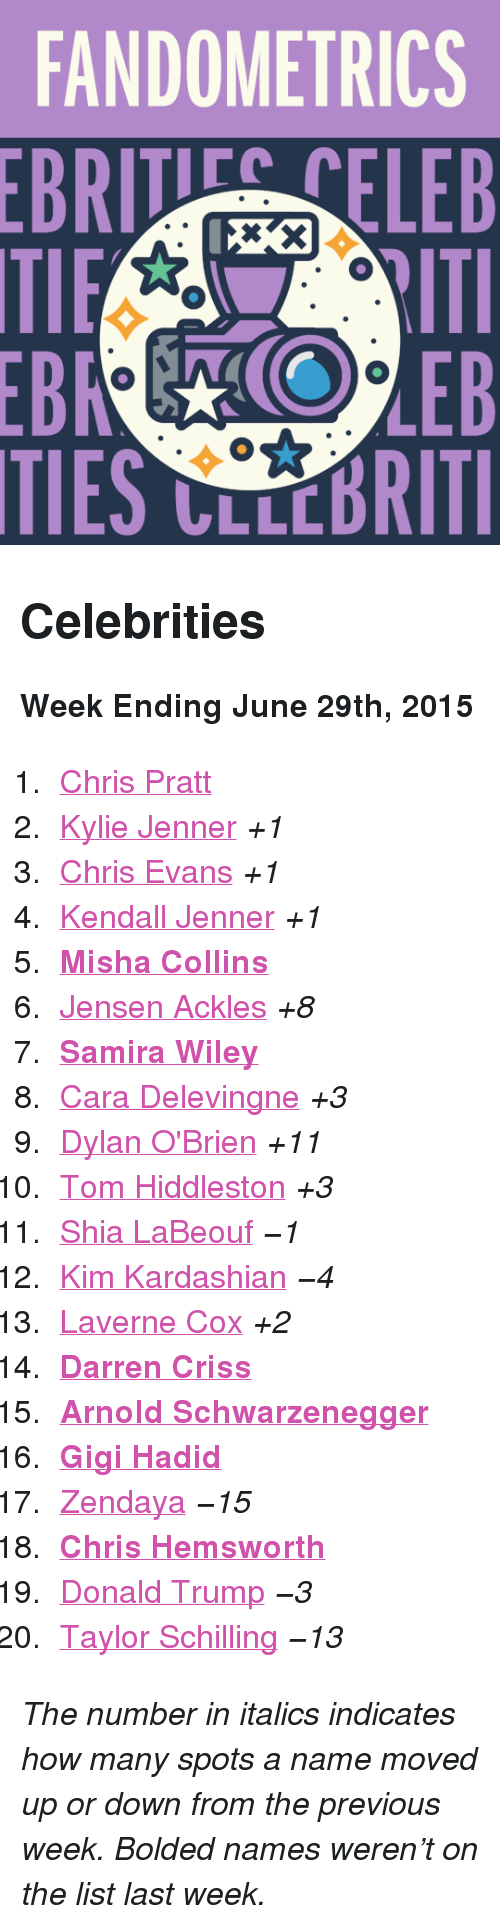 "samira wiley: FANDOMETRICS  BRTELEB  TIES CLLCBRITI <h2>Celebrities</h2><p><b>Week Ending June 29th, 2015</b></p><ol><li><a href=""http://www.tumblr.com/search/chris%20pratt"">Chris Pratt</a></li>  <li><a href=""http://www.tumblr.com/search/kylie%20jenner"">Kylie Jenner</a> <i>+1</i></li>  <li><a href=""http://www.tumblr.com/search/chris%20evans"">Chris Evans</a> <i>+1</i></li>  <li><a href=""http://www.tumblr.com/search/kendall%20jenner"">Kendall Jenner</a> <i>+1</i></li>  <li><a href=""http://www.tumblr.com/search/misha%20collins""><b>Misha Collins</b></a></li>  <li><a href=""http://www.tumblr.com/search/jensen%20ackles"">Jensen Ackles</a> <i>+8</i></li>  <li><a href=""http://www.tumblr.com/search/samira%20wiley""><b>Samira Wiley</b></a></li>  <li><a href=""http://www.tumblr.com/search/cara%20delevingne"">Cara Delevingne</a> <i>+3</i></li>  <li><a href=""http://www.tumblr.com/search/dylan%20o'brien"">Dylan O'Brien</a> <i>+11</i></li>  <li><a href=""http://www.tumblr.com/search/tom%20hiddleston"">Tom Hiddleston</a> <i>+3</i></li>  <li><a href=""http://www.tumblr.com/search/shia%20labeouf"">Shia LaBeouf</a> <i>−1</i></li>  <li><a href=""http://www.tumblr.com/search/kim%20kardashian"">Kim Kardashian</a> <i>−4</i></li>  <li><a href=""http://www.tumblr.com/search/laverne%20cox"">Laverne Cox</a><i> +2</i></li>  <li><a href=""http://www.tumblr.com/search/darren%20criss""><b>Darren Criss</b></a></li>  <li><a href=""http://www.tumblr.com/search/arnold%20schwarzenegger""><b>Arnold Schwarzenegger</b></a></li>  <li><a href=""http://www.tumblr.com/search/gigi%20hadid""><b>Gigi Hadid</b></a></li>  <li><a href=""http://www.tumblr.com/search/zendaya"">Zendaya</a> <i>−15</i></li>  <li><a href=""http://www.tumblr.com/search/chris%20hemsworth""><b>Chris Hemsworth</b></a></li>  <li><a href=""http://www.tumblr.com/search/donald%20trump"">Donald Trump</a> <i>−3</i></li>  <li><a href=""http://www.tumblr.com/search/taylor%20schilling"">Taylor Schilling</a> <i>−13</i></li></ol><p><i>The number in italics indicates how many spots a name moved up or down from the previous week. Bolded names weren't on the list last week.</i></p>"